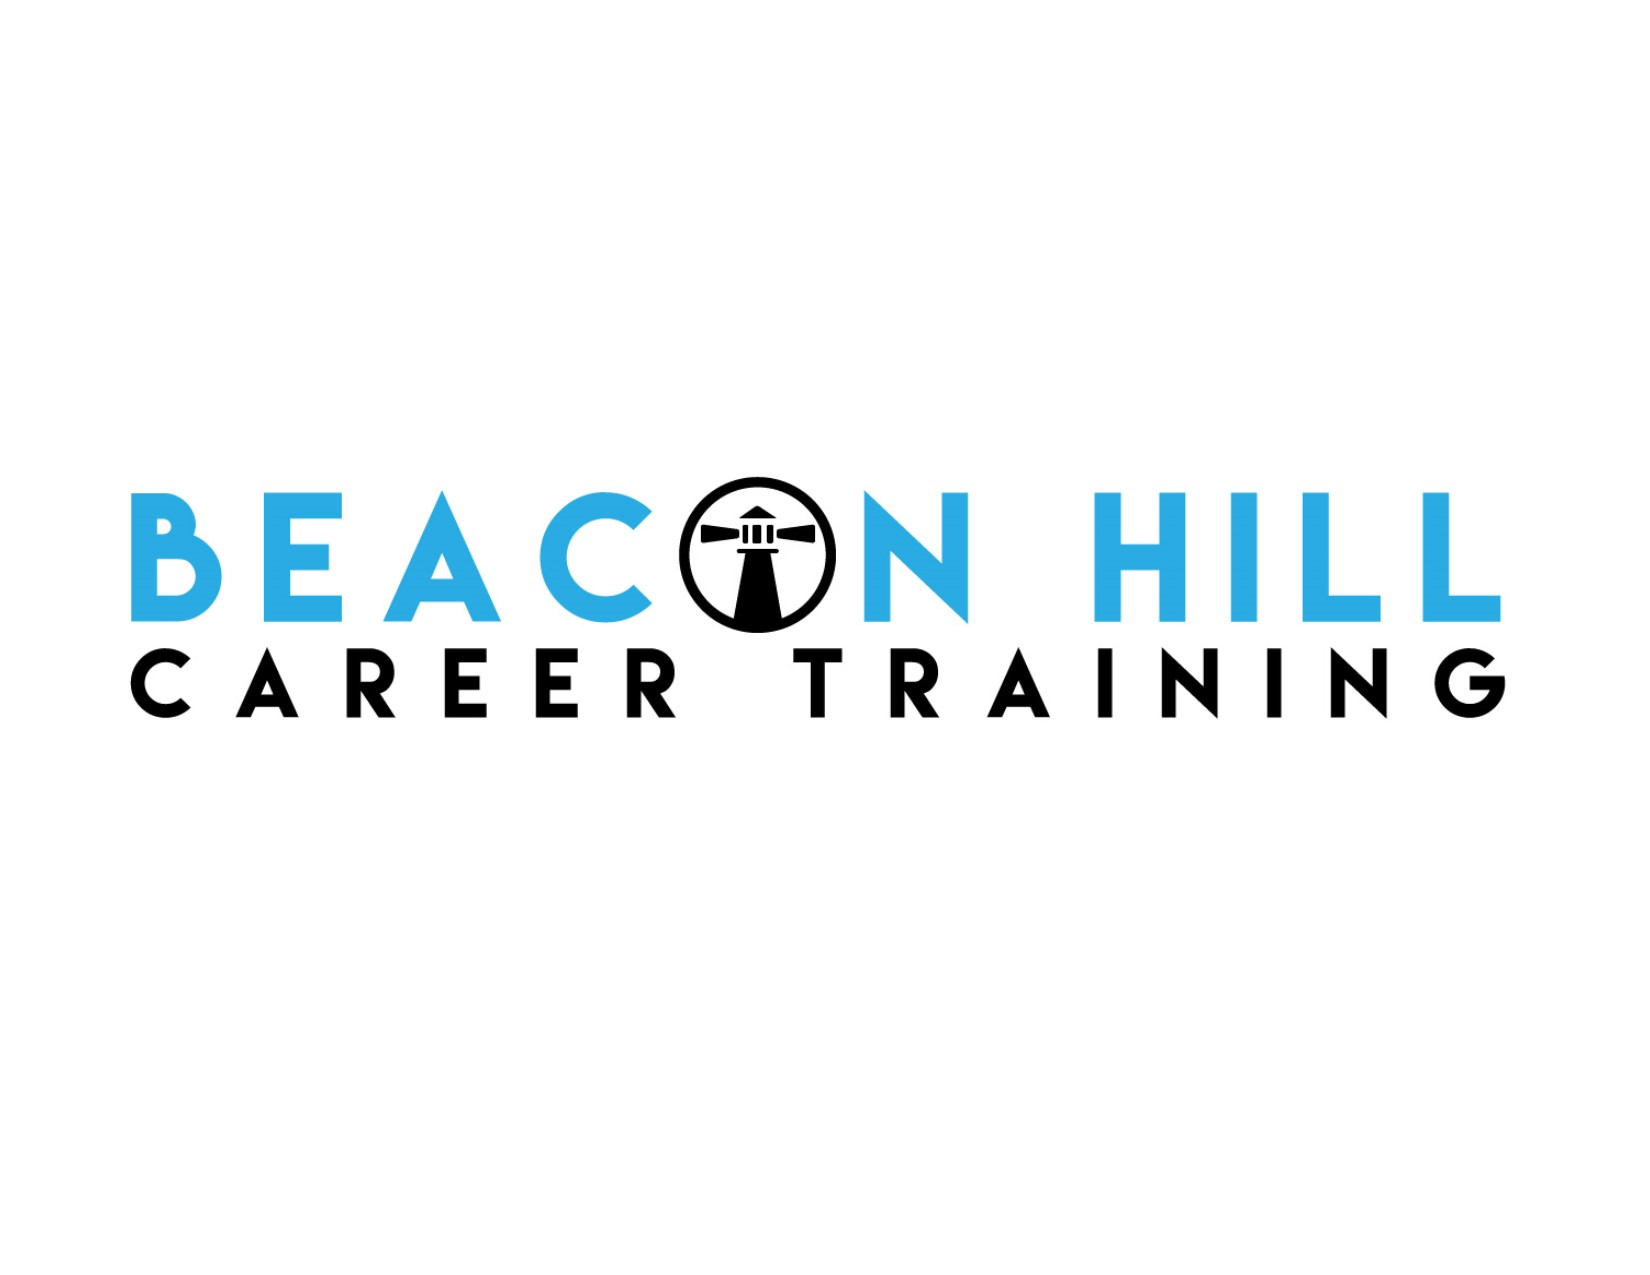 Beacon Hill Career Training